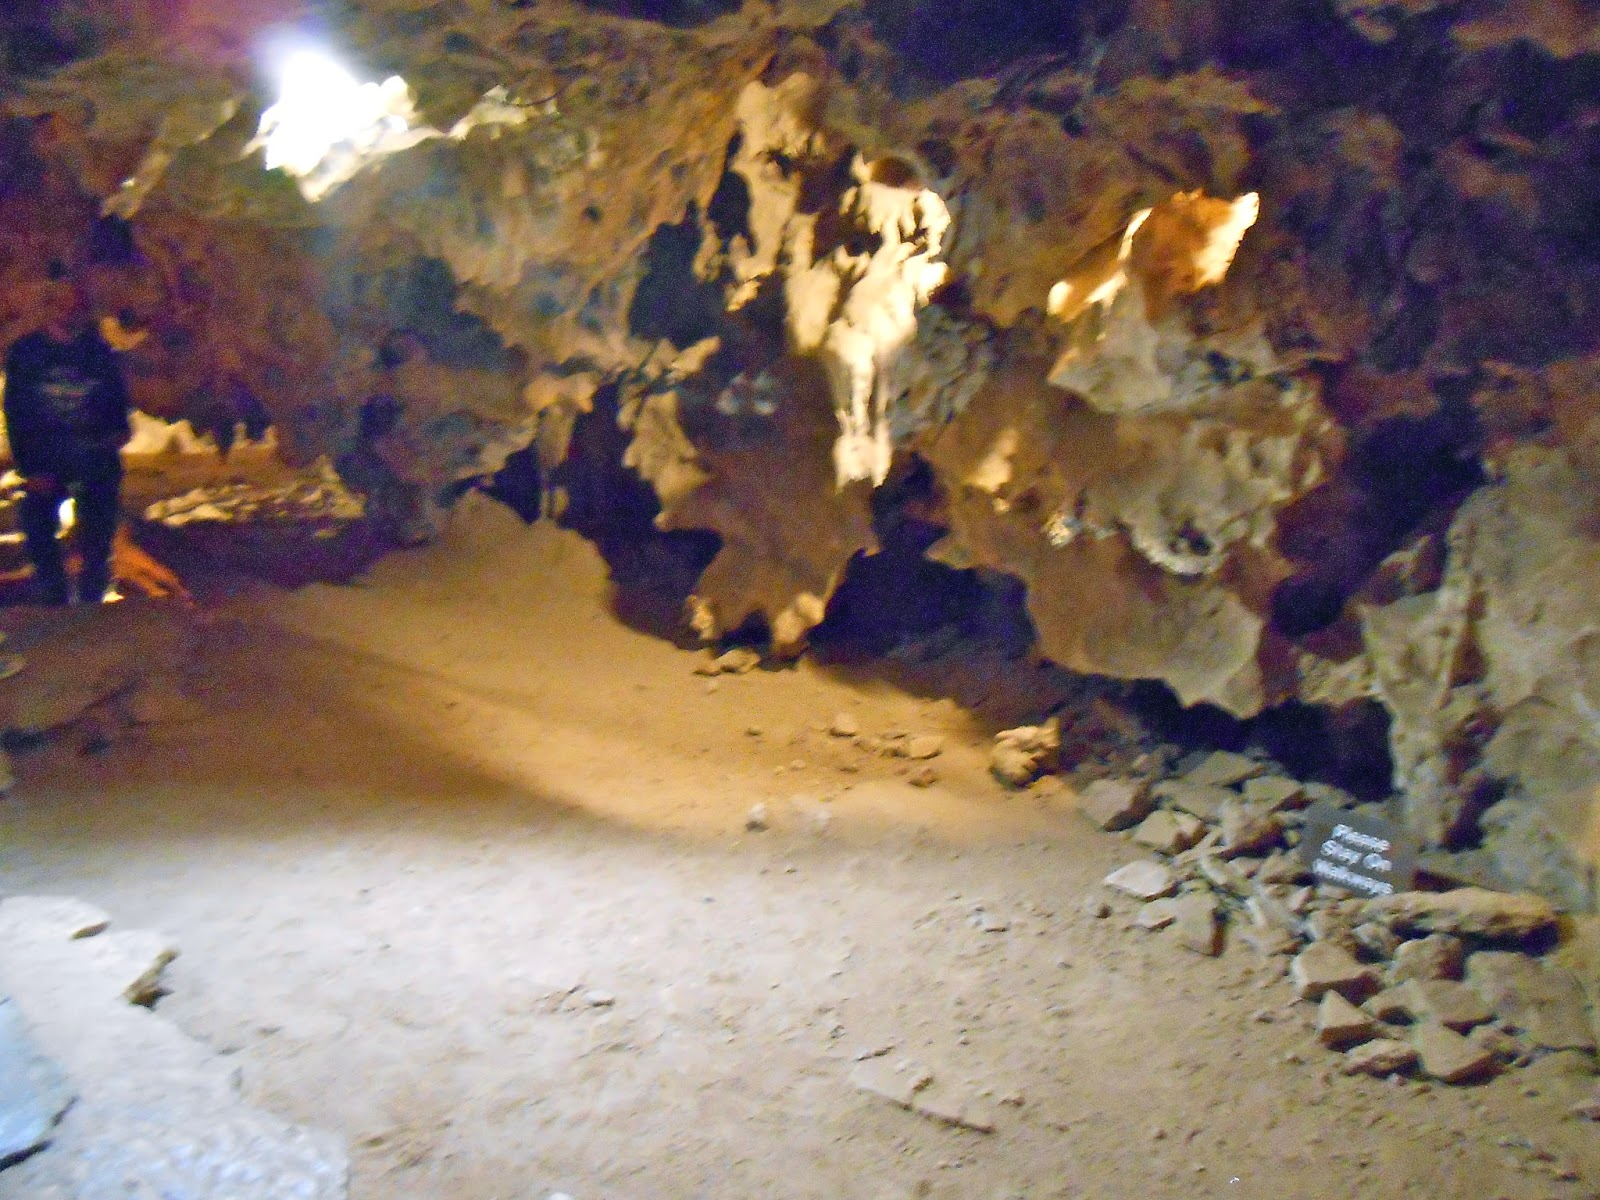 living room in colossal cave tucson arizona